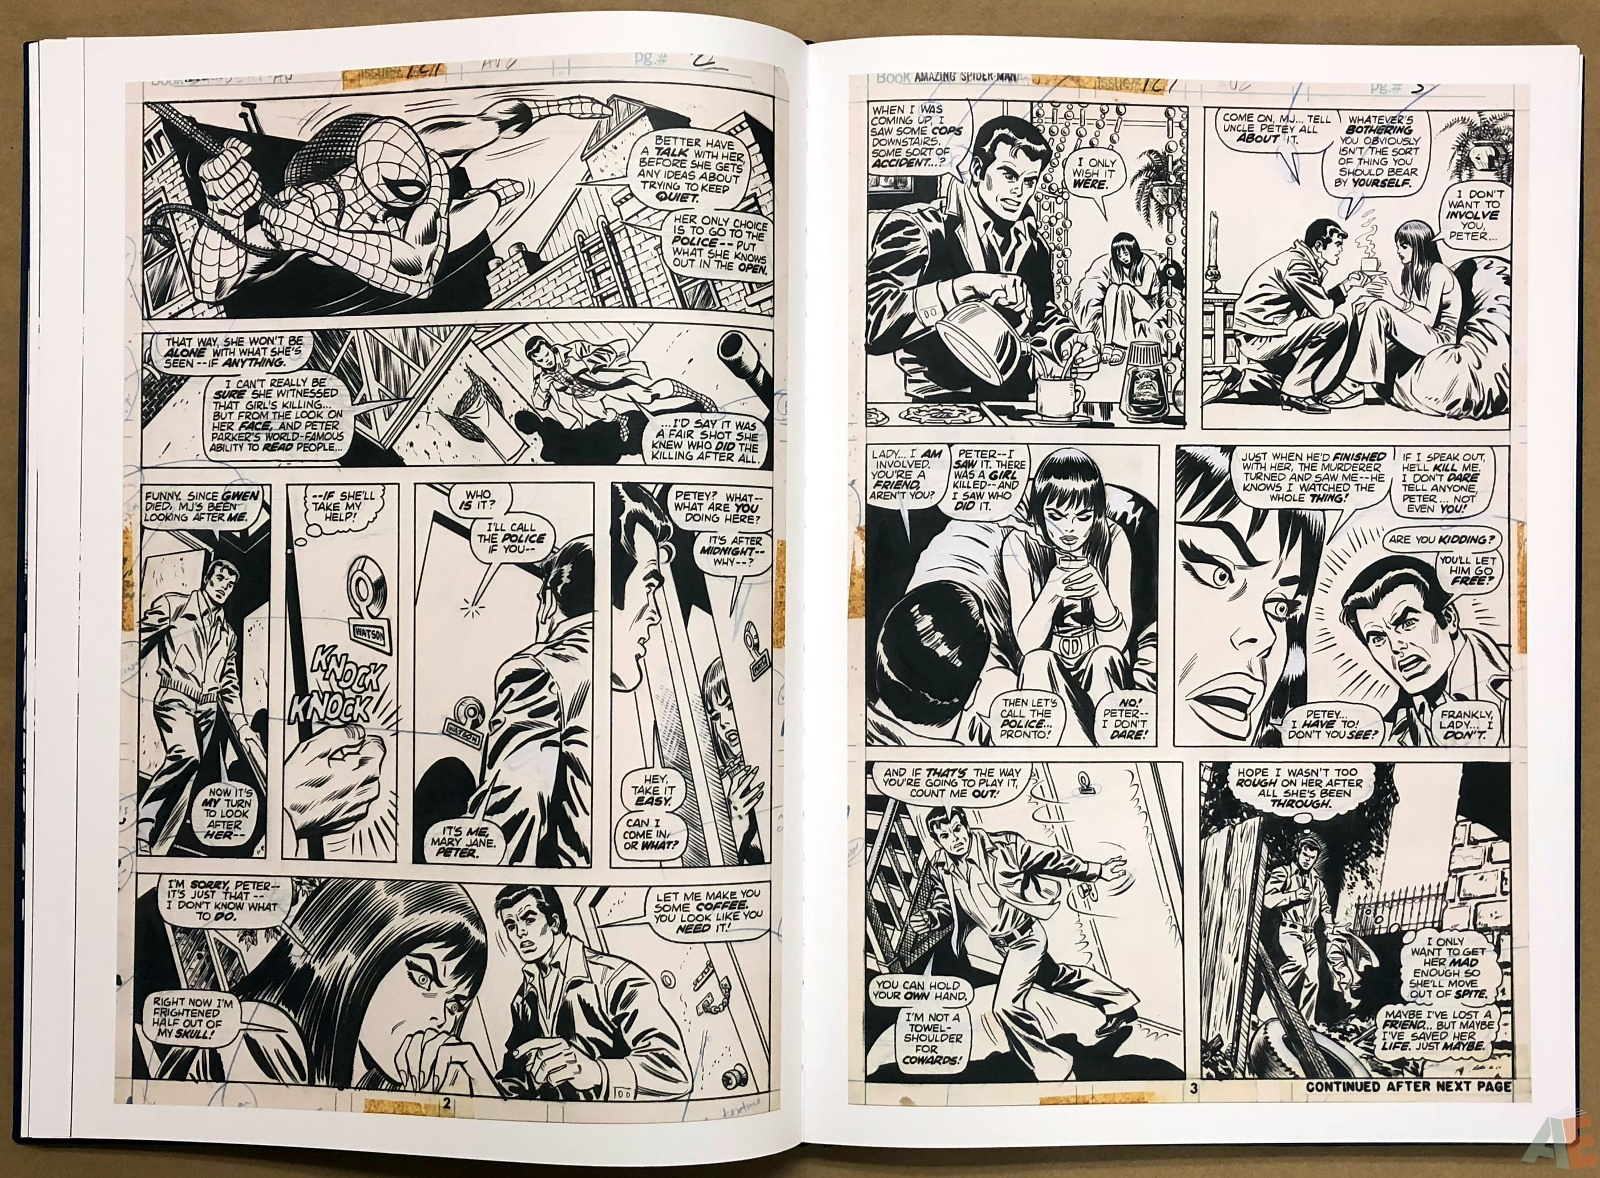 Ross Andru's The Amazing Spider-Man Artist's Edition 20